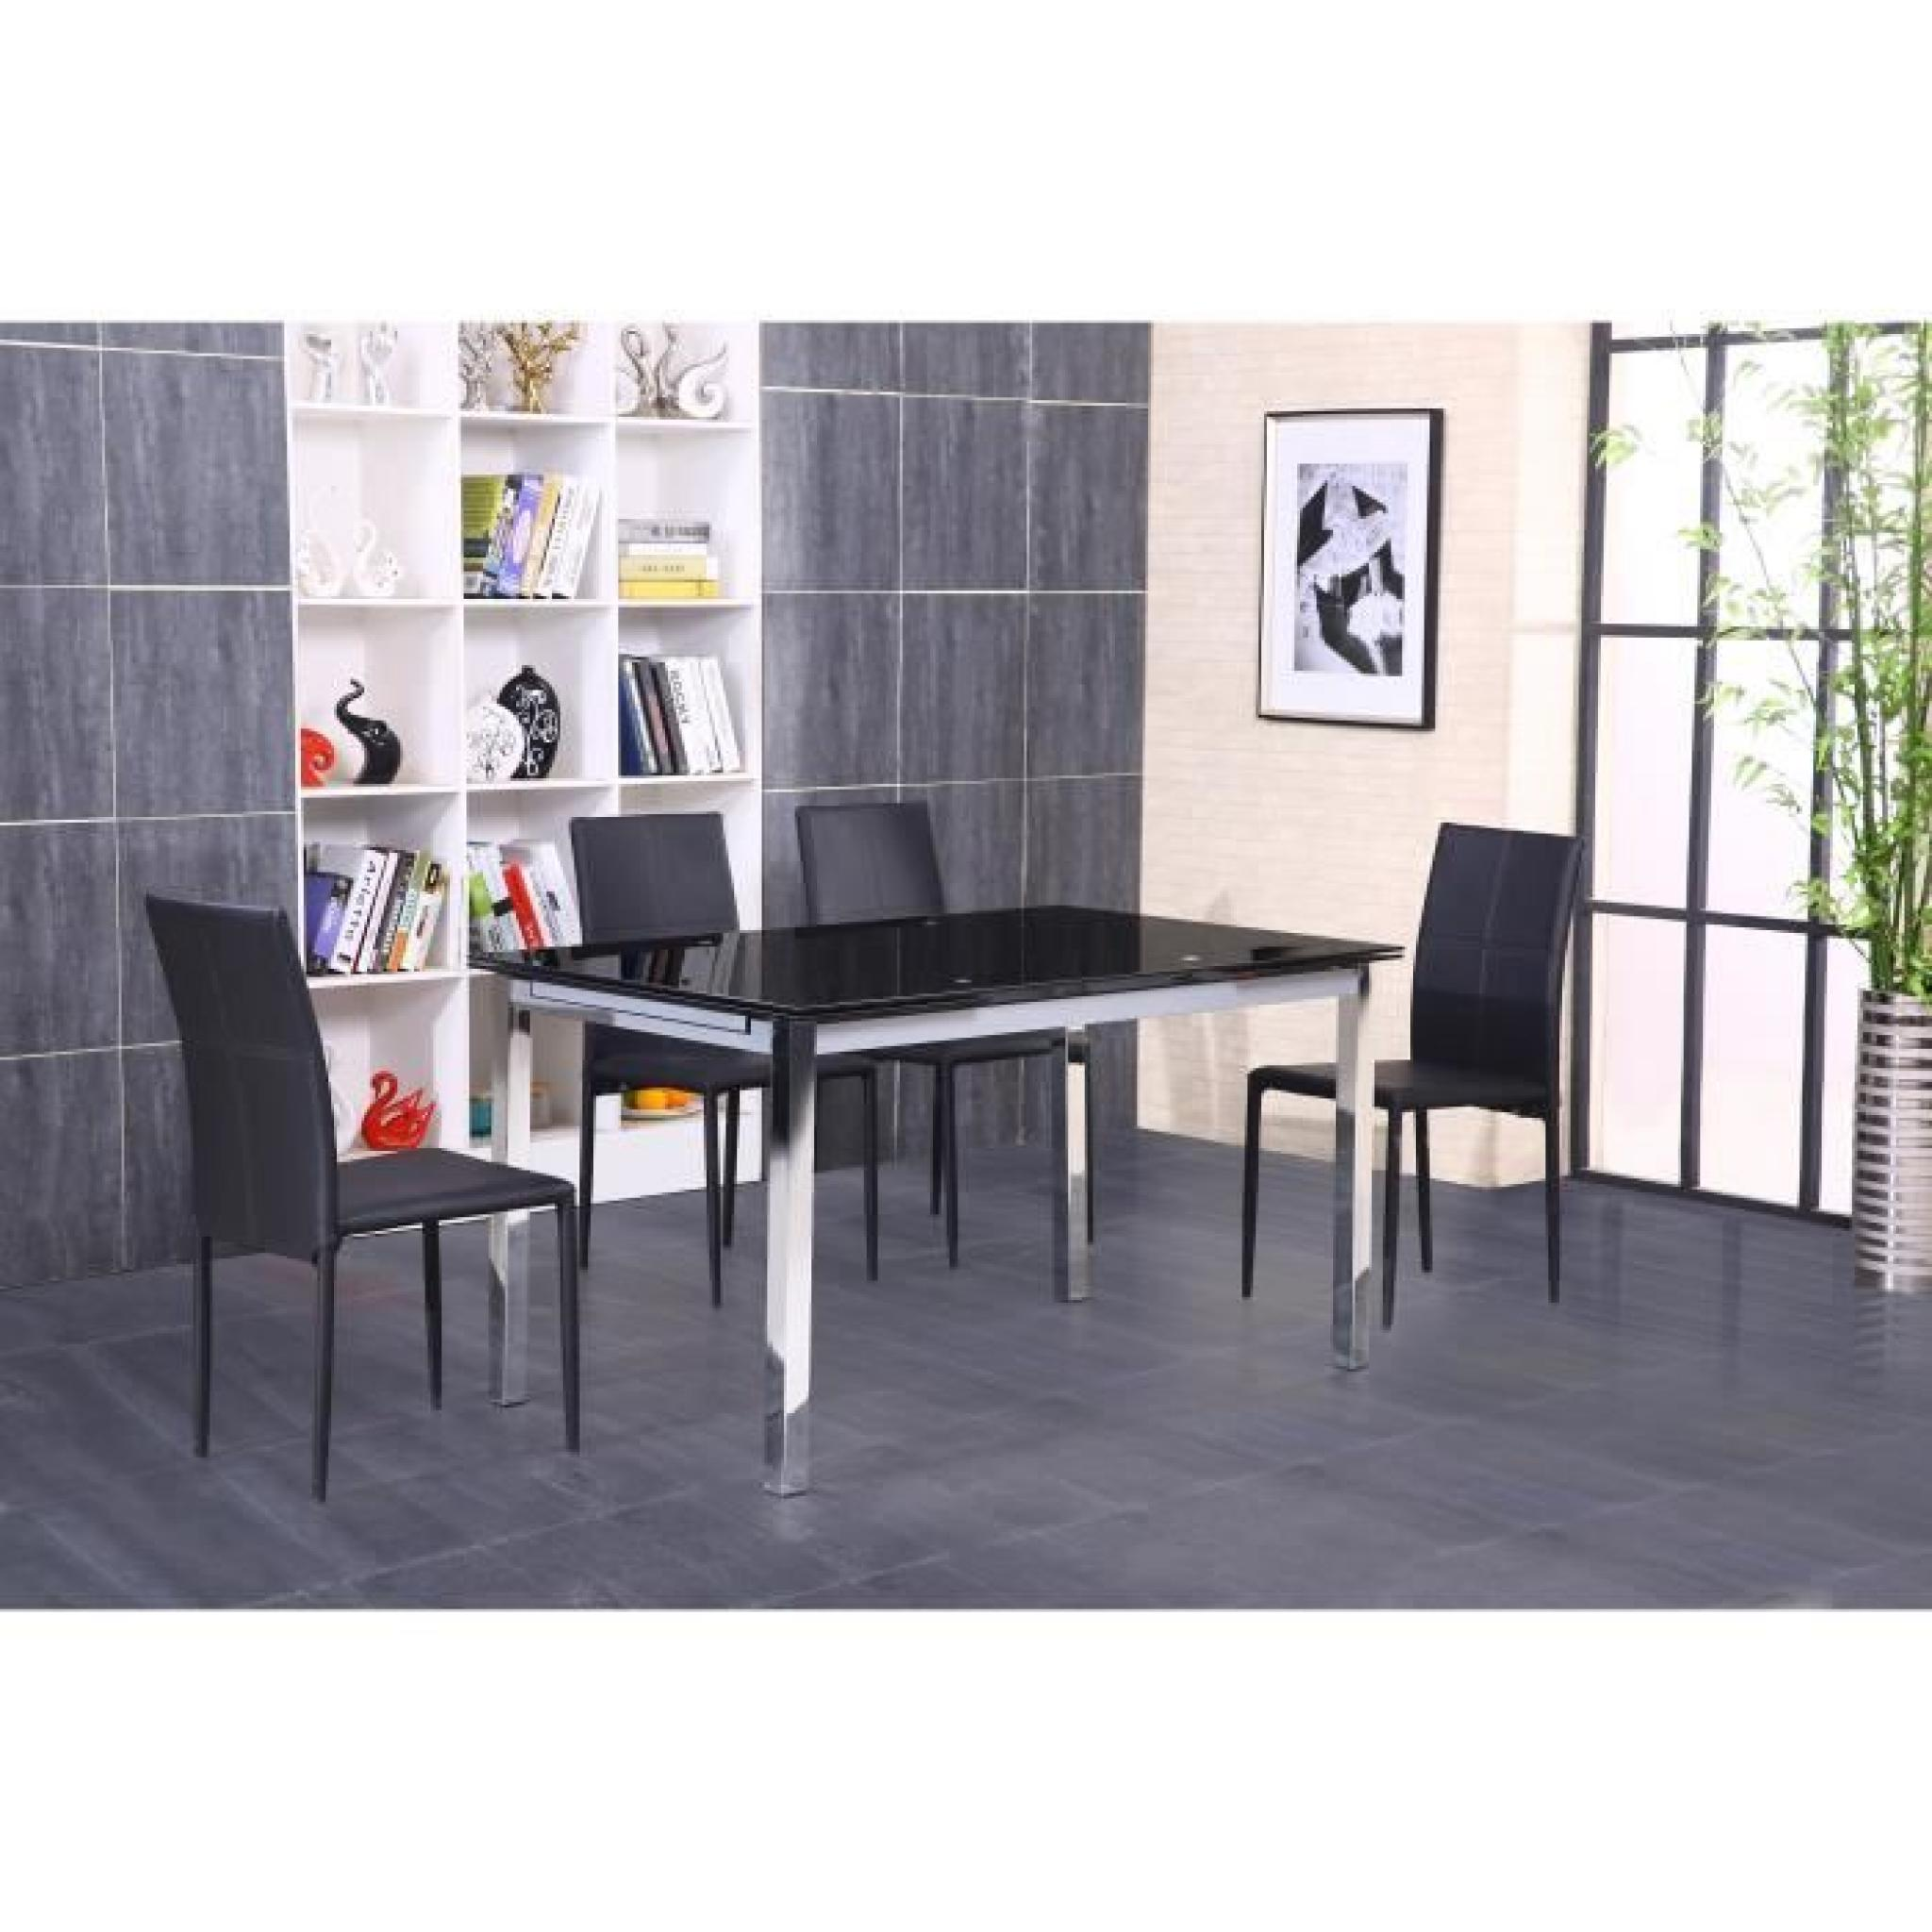 Extensible Noir Max ChromeVerre Table 140220 oeWrdBxC